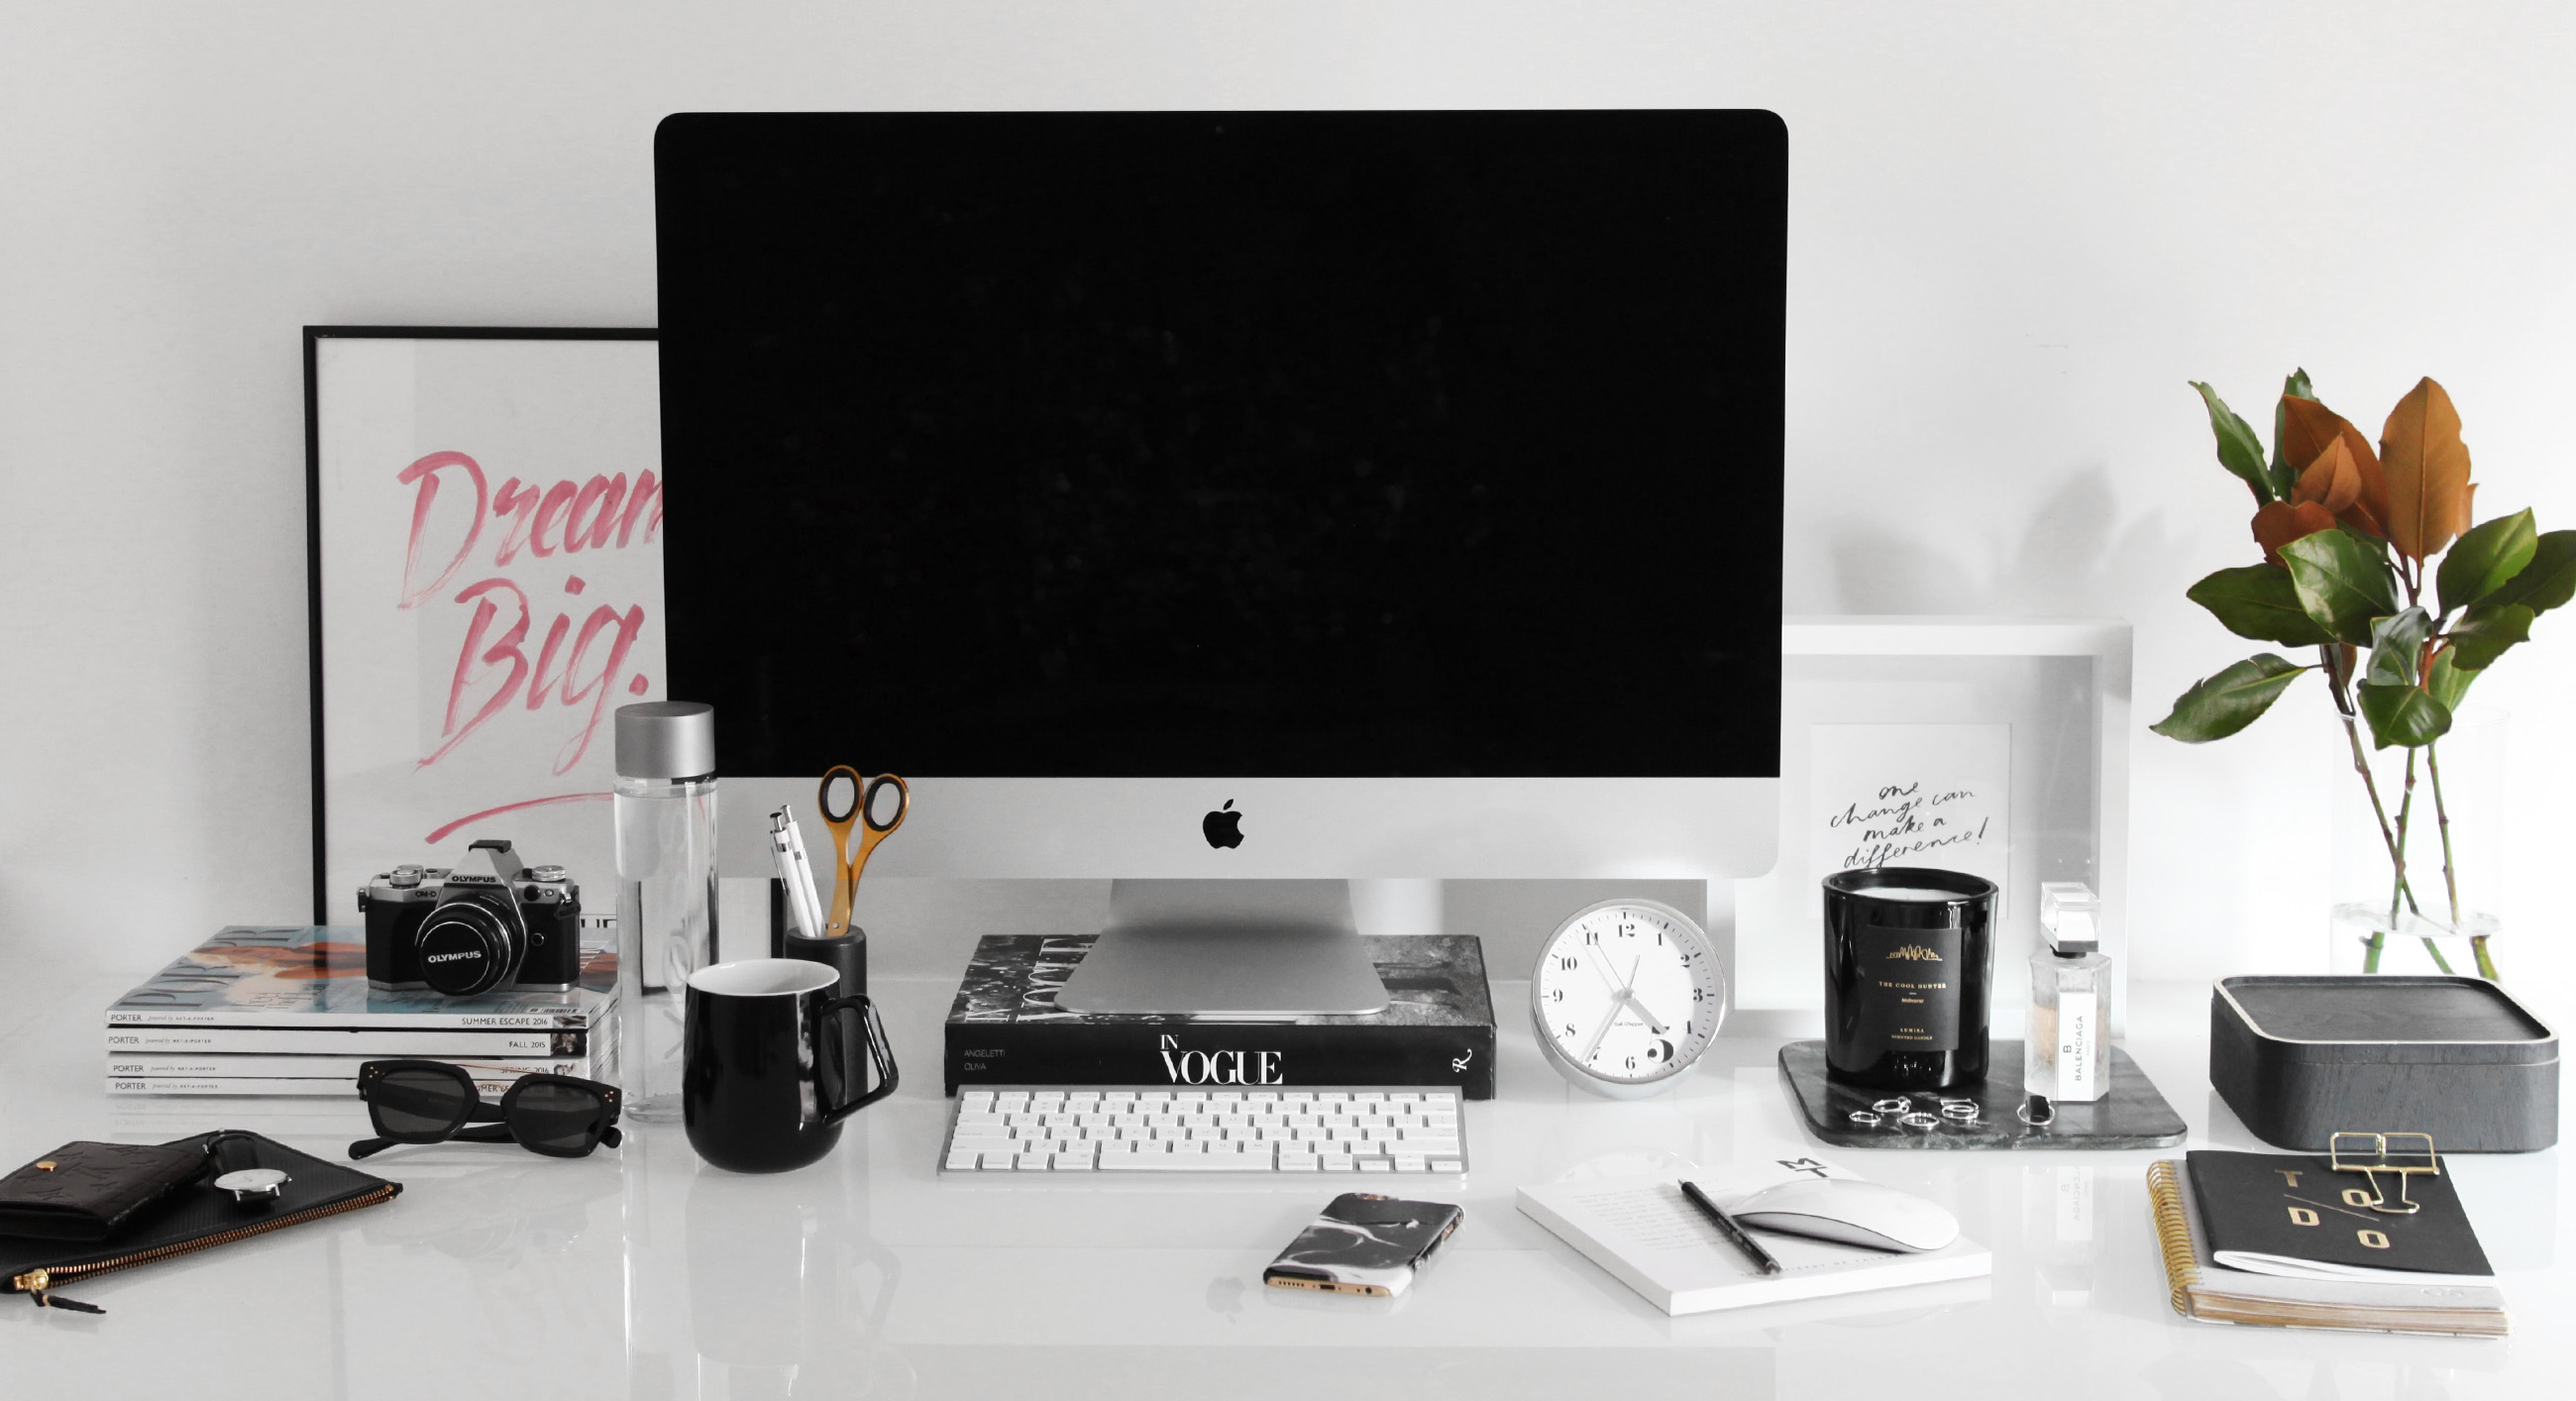 organise your workspace design by aikonik 2 - Design Workspace